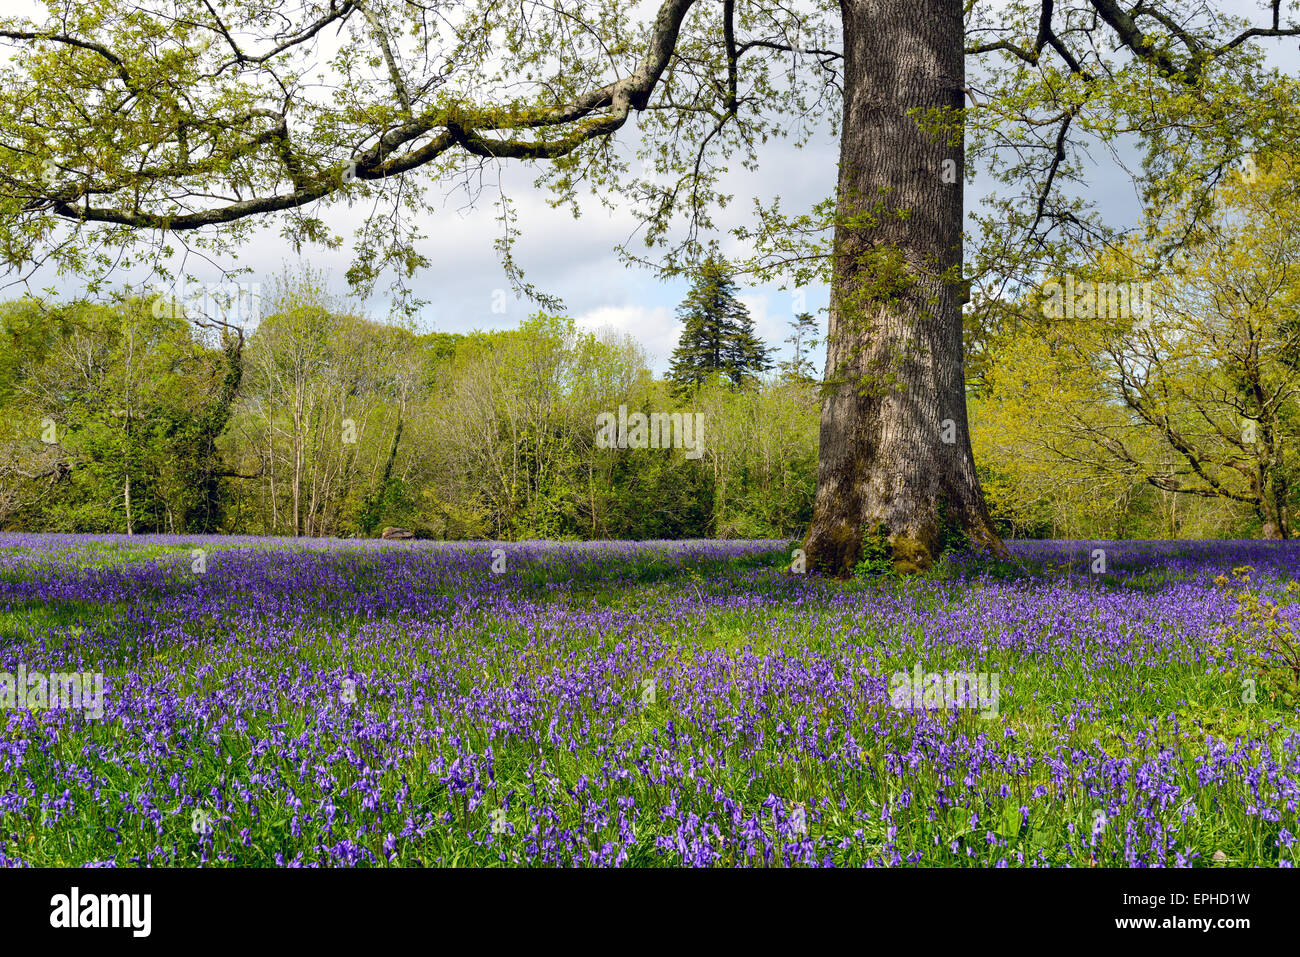 A glade of spring bluebells under an old oak tree in Cornwall - Stock Image